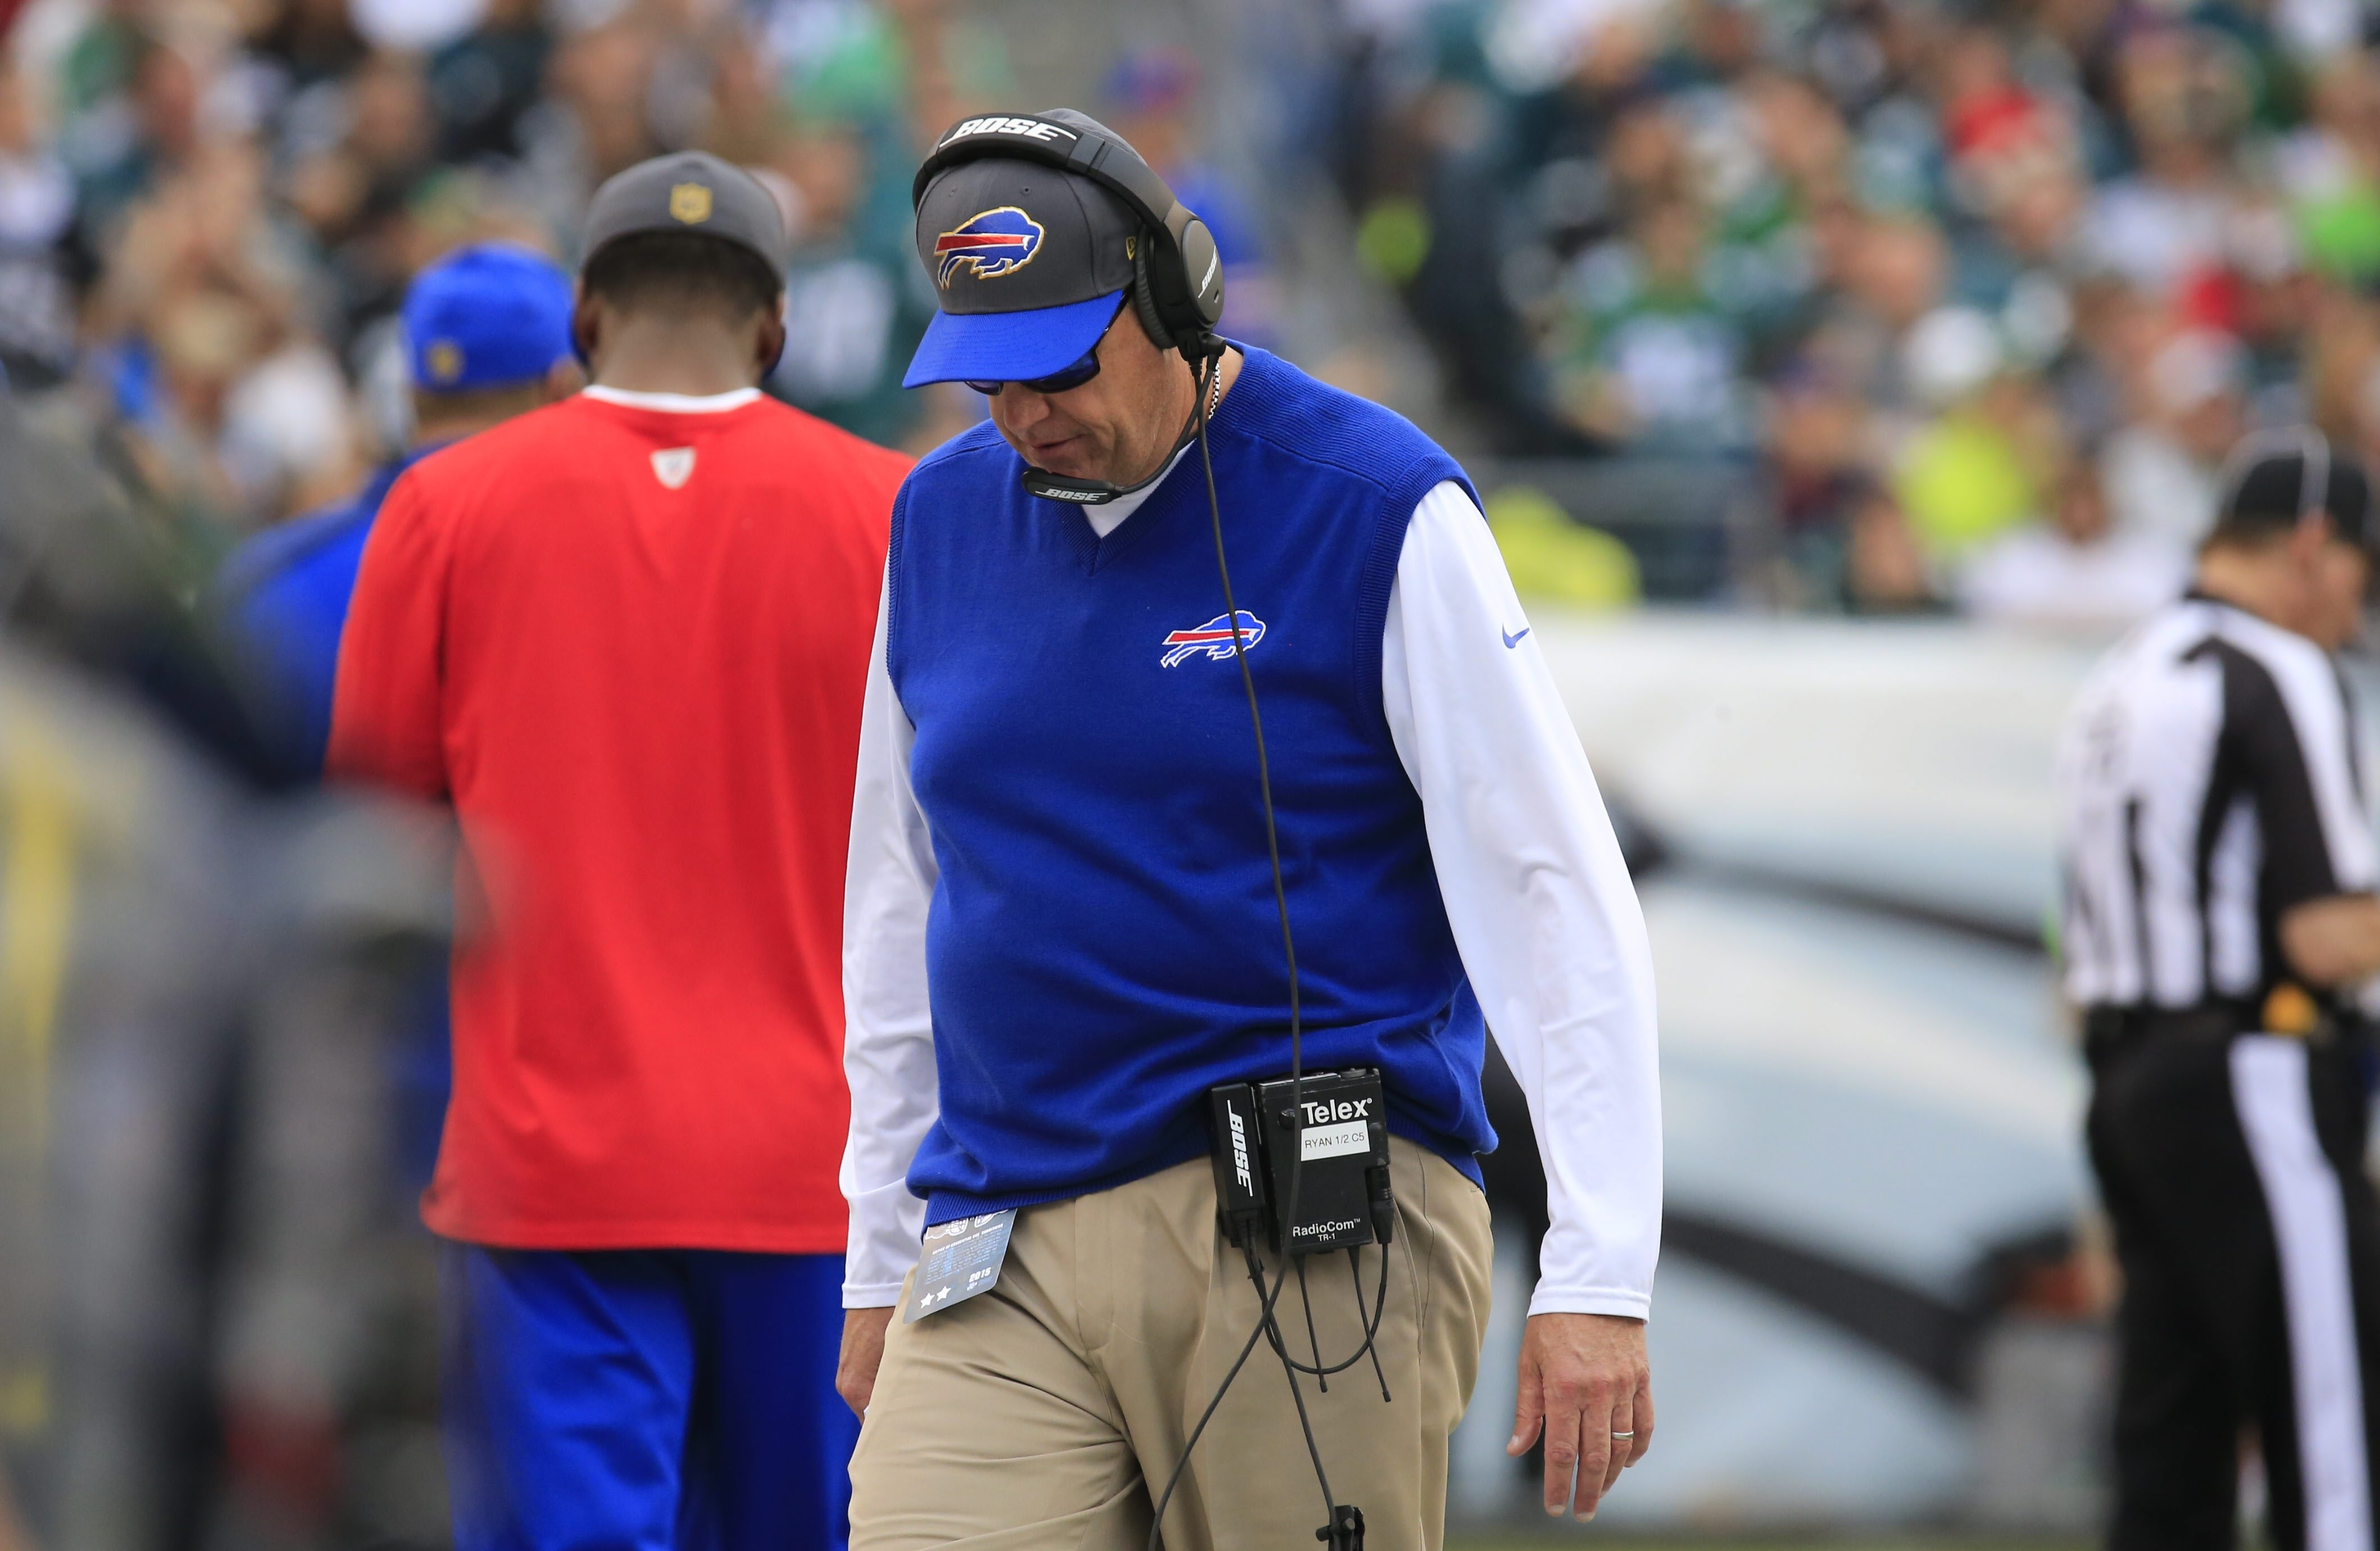 Bills coach Rex Ryan walks with his head down after a penalty was called against his team during the first half. The team's undisciplined play is a major reason why it will likely be watching the playoffs on TV.